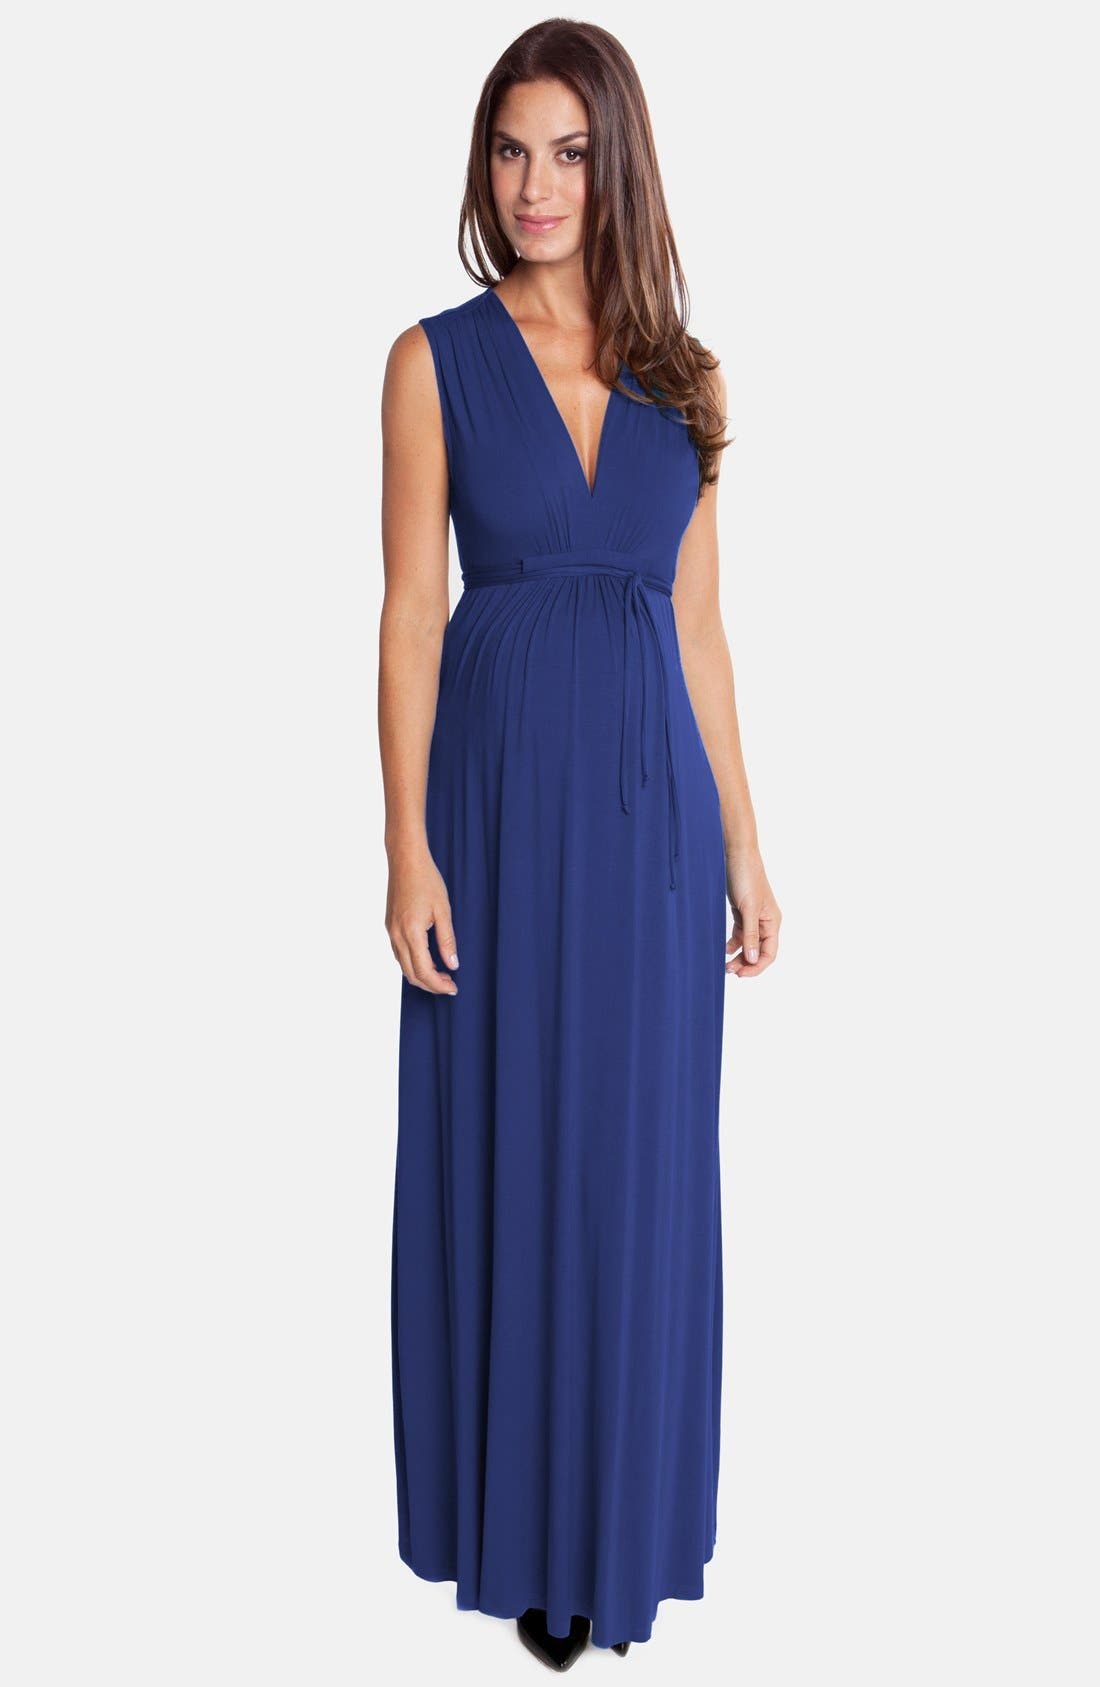 Lucy Maternity Maxi Dress,                             Main thumbnail 1, color,                             TRUE BLUE